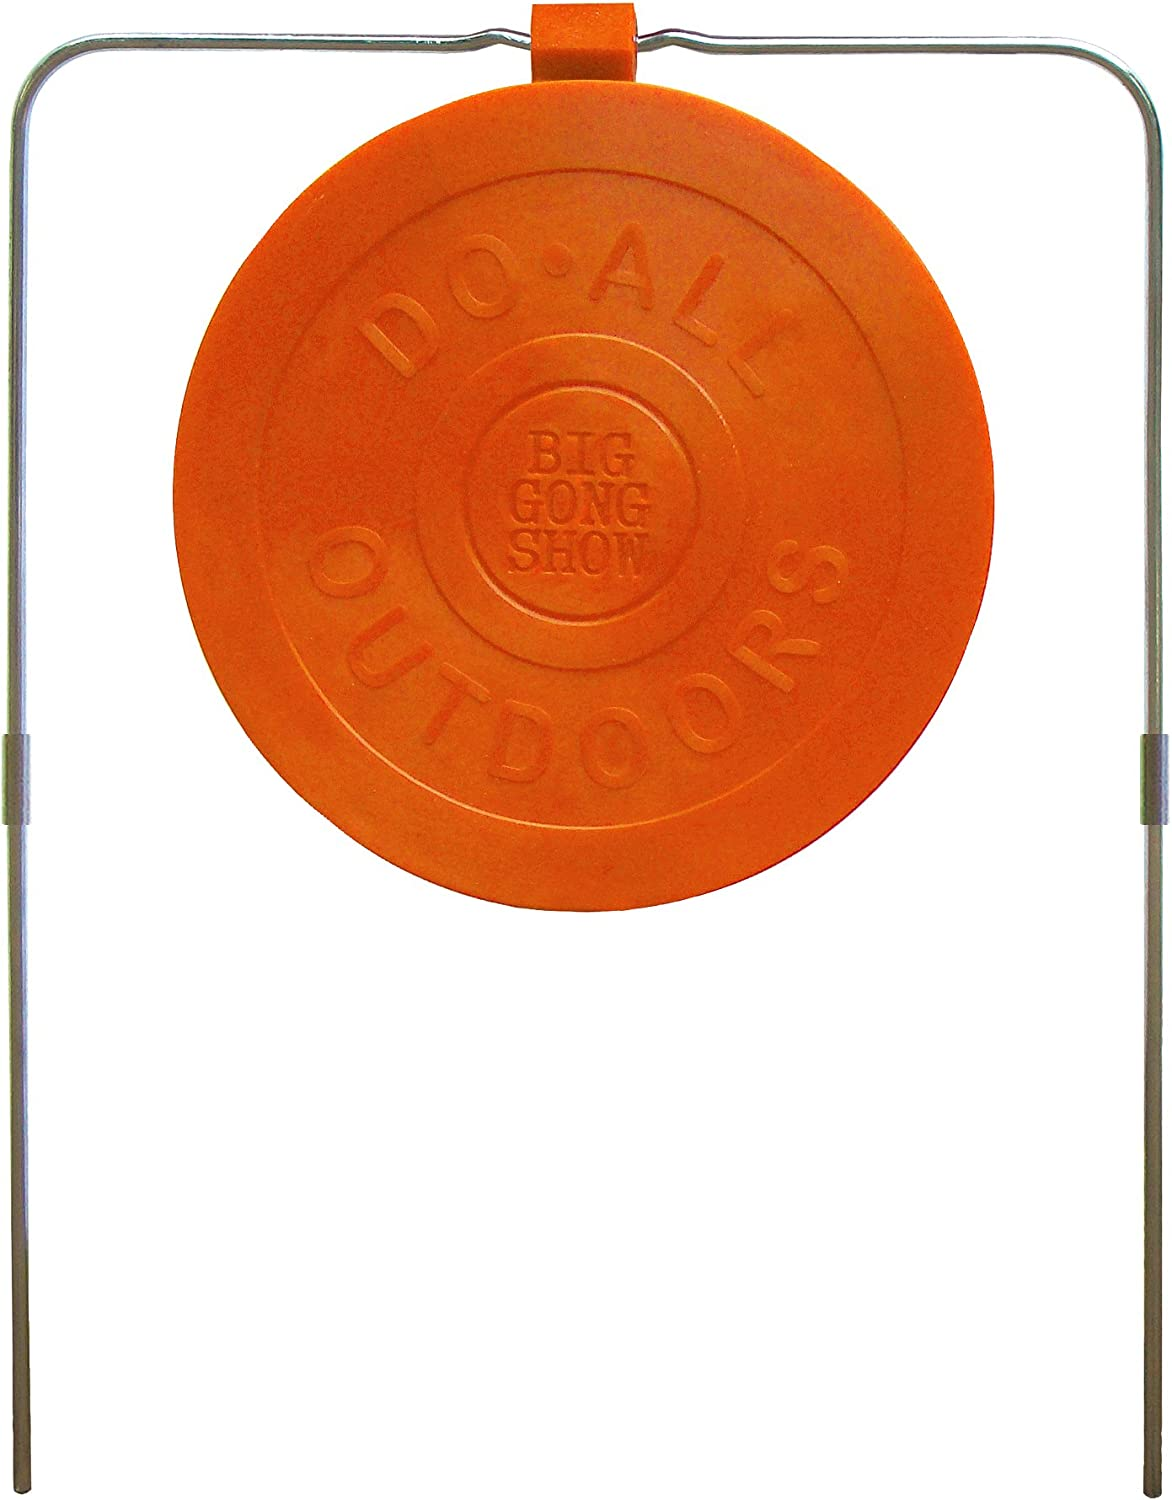 "Do-All Outdoors Big Gong Show 9"" Self-Healing Shooting Target Rated for .22-.50 Caliber : Hunting Targets And Accessories : Sports & Outdoors"